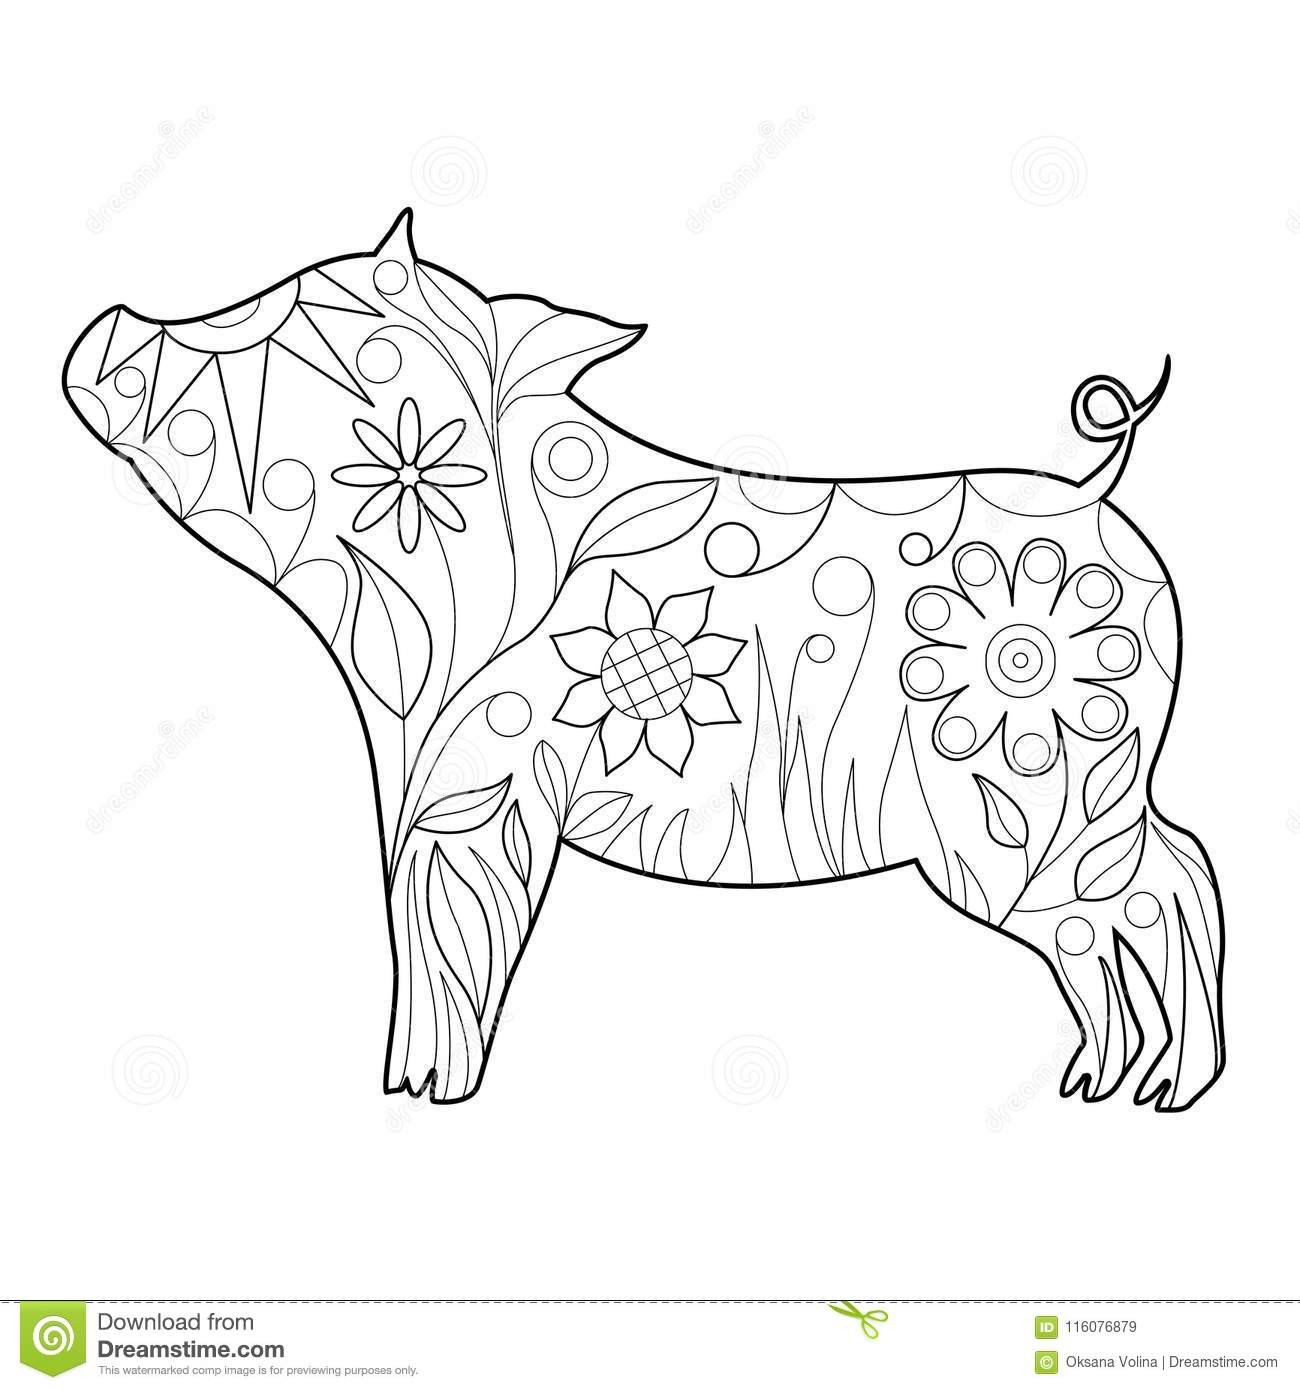 Year of the pig 2019 coloring pages ~ Beautiful Doodle Symbol Of The Year 2019 Pig For Coloring ...